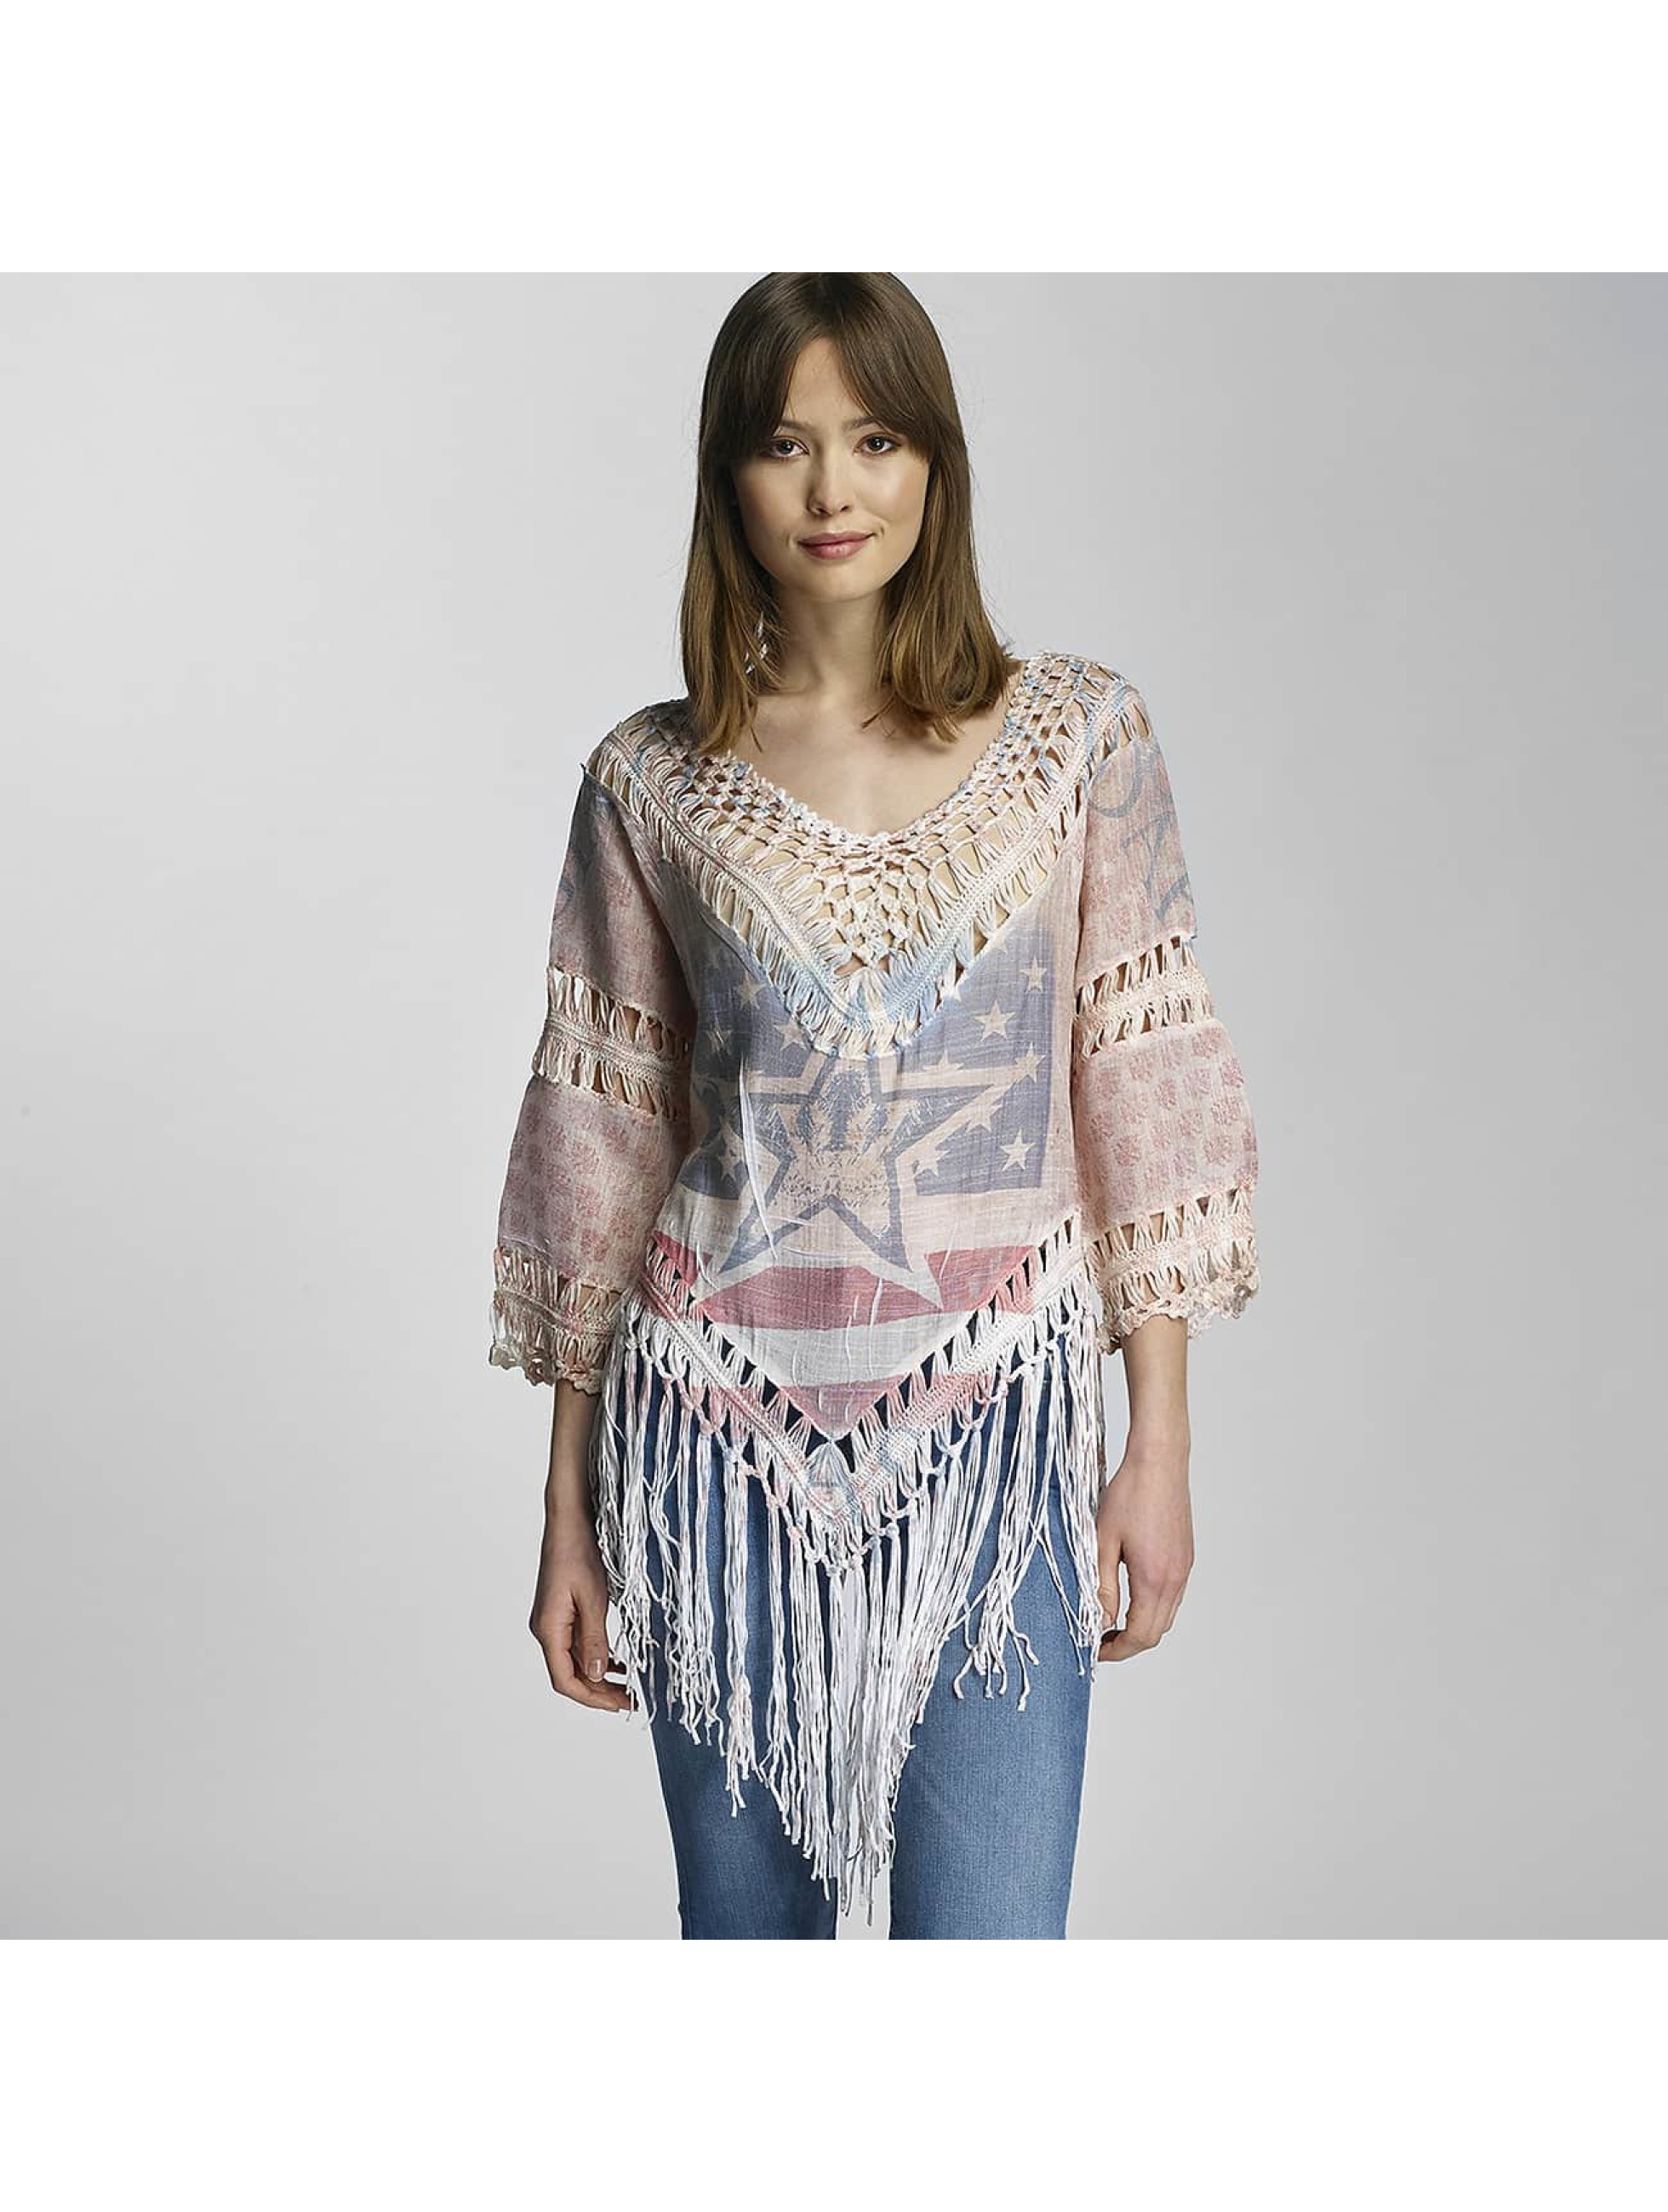 Poolgirl Blouse/Tunic Star colored